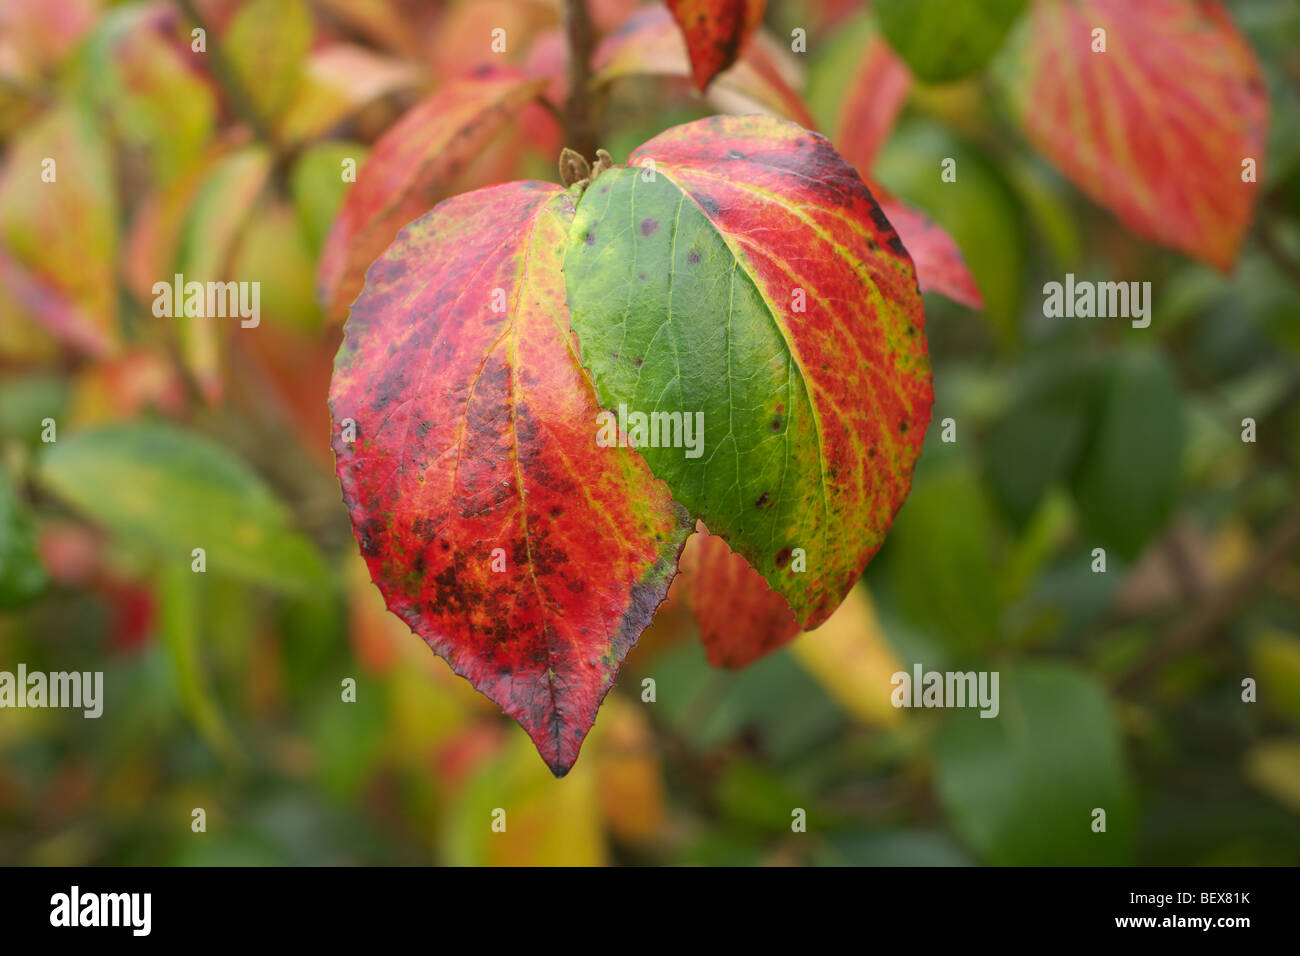 A tree with red and green leaves exhibiting senescence in autumn - Stock Image